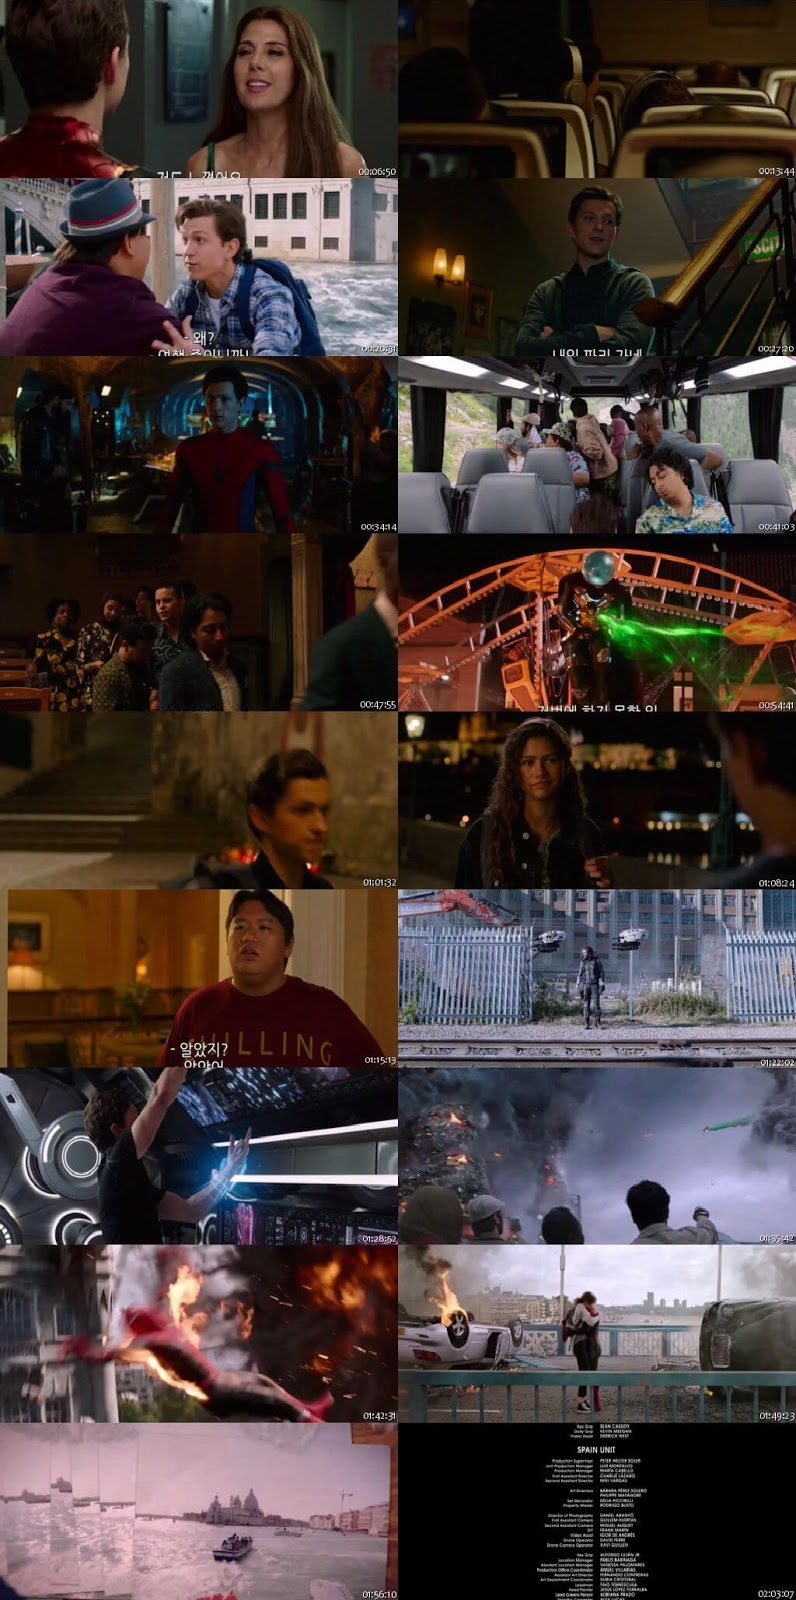 Far%2Bfrom%2BHome Far from Home 2019 Movie Hindi Dubbed 720P HD Download